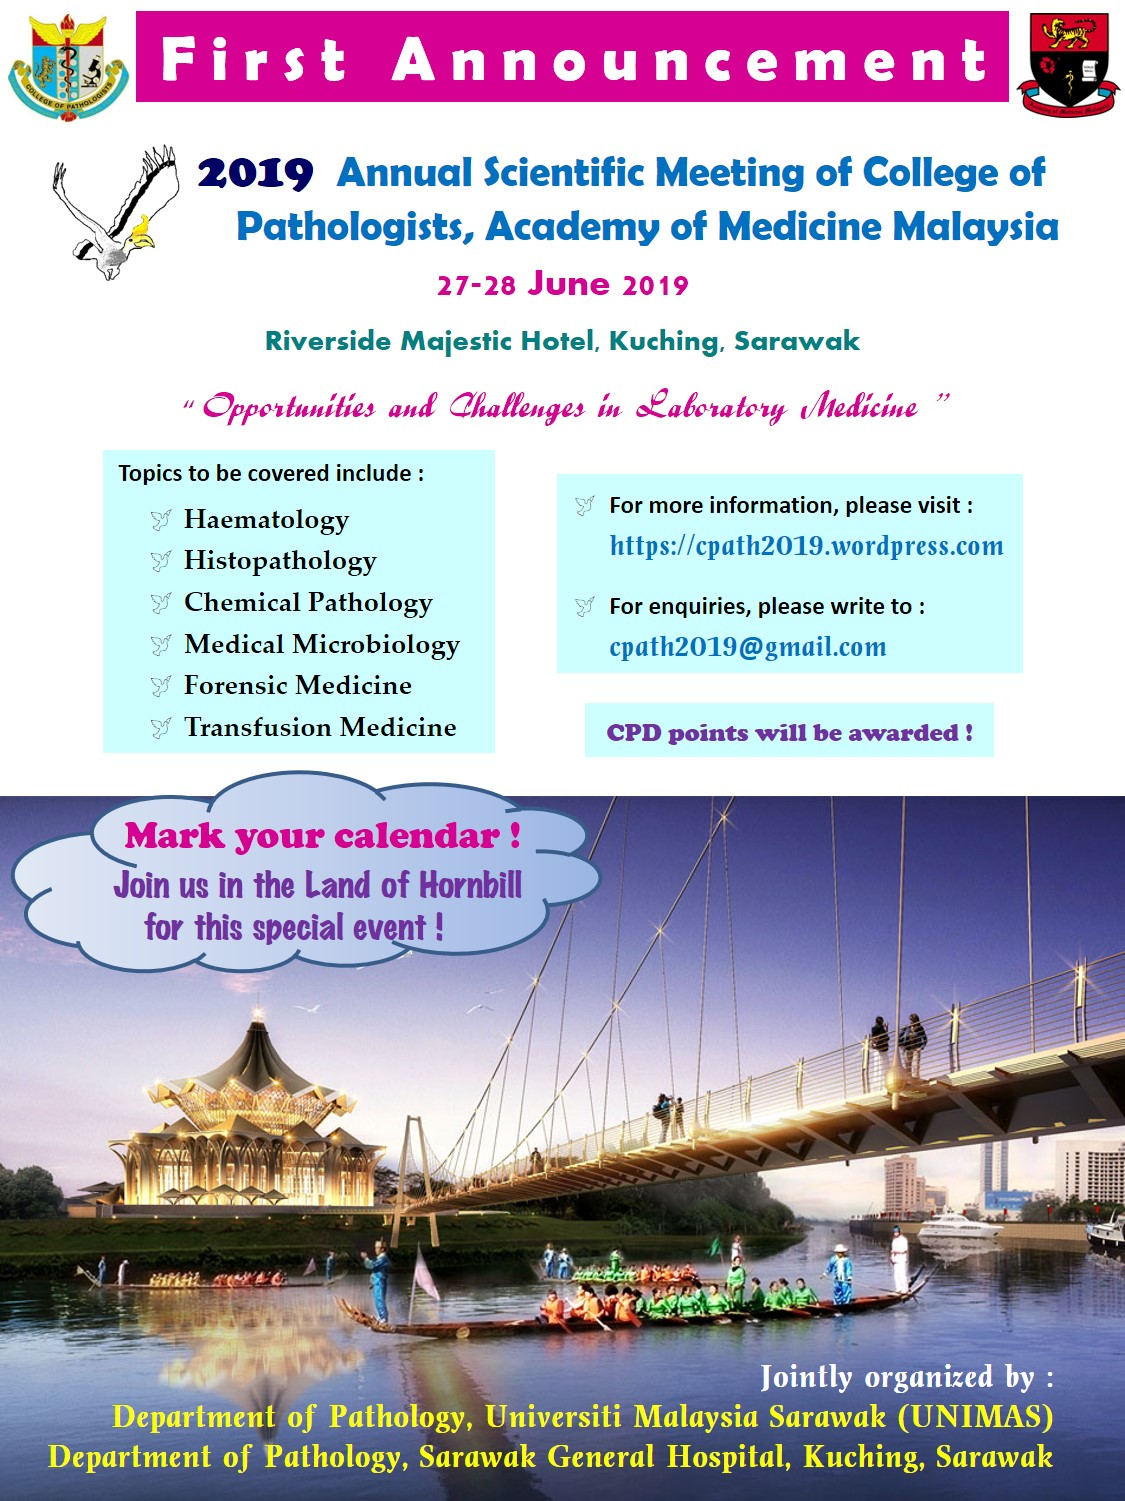 2019 Annual Scientific Meeting of College of Pathologists Academy of